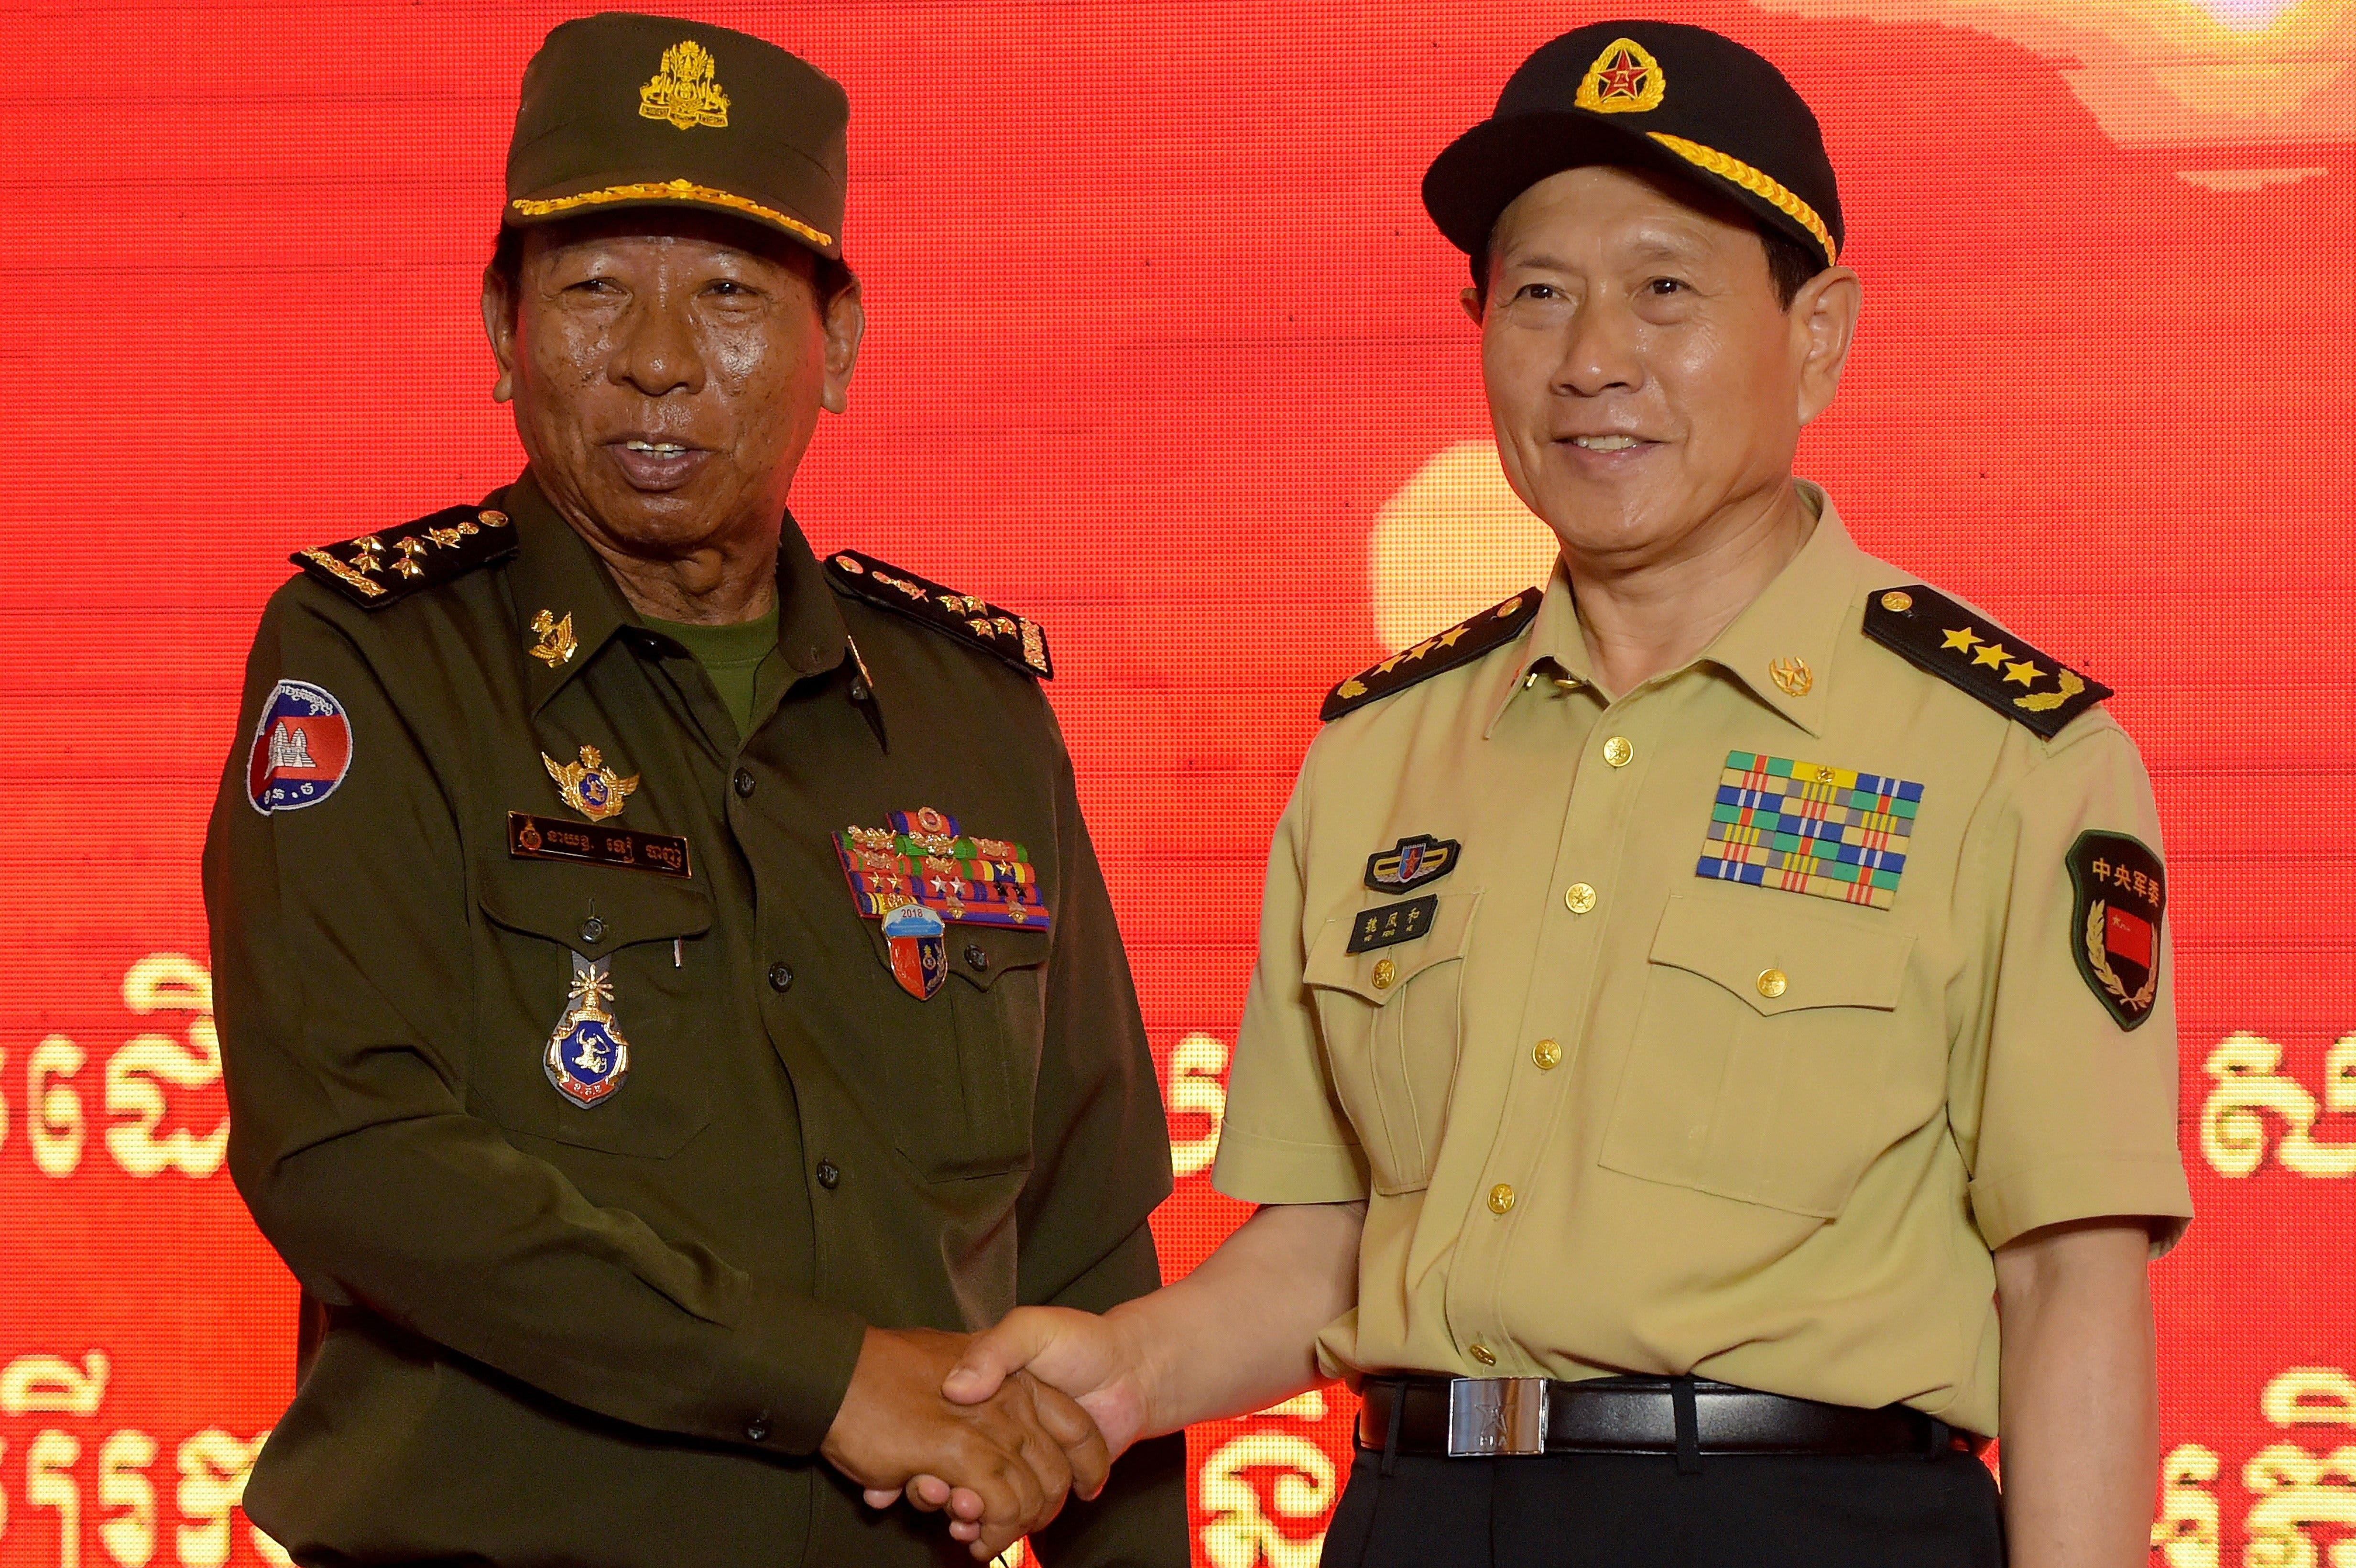 Cambodia denies deal to allow armed Chinese forces at its naval base